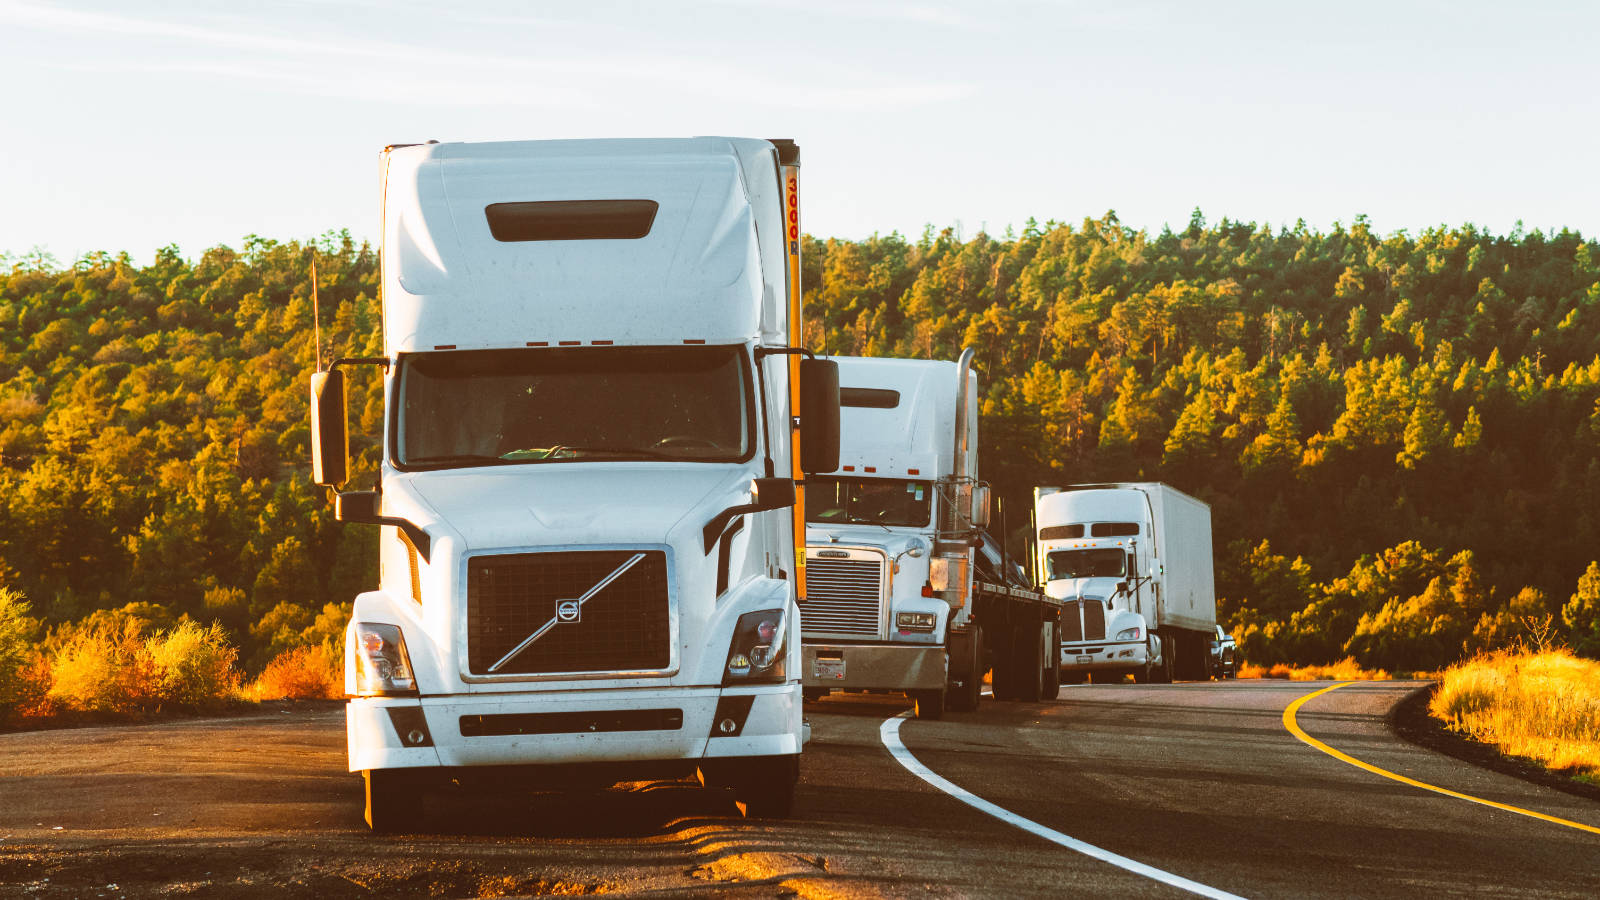 Photo of semi-trailer trucks parked off highway